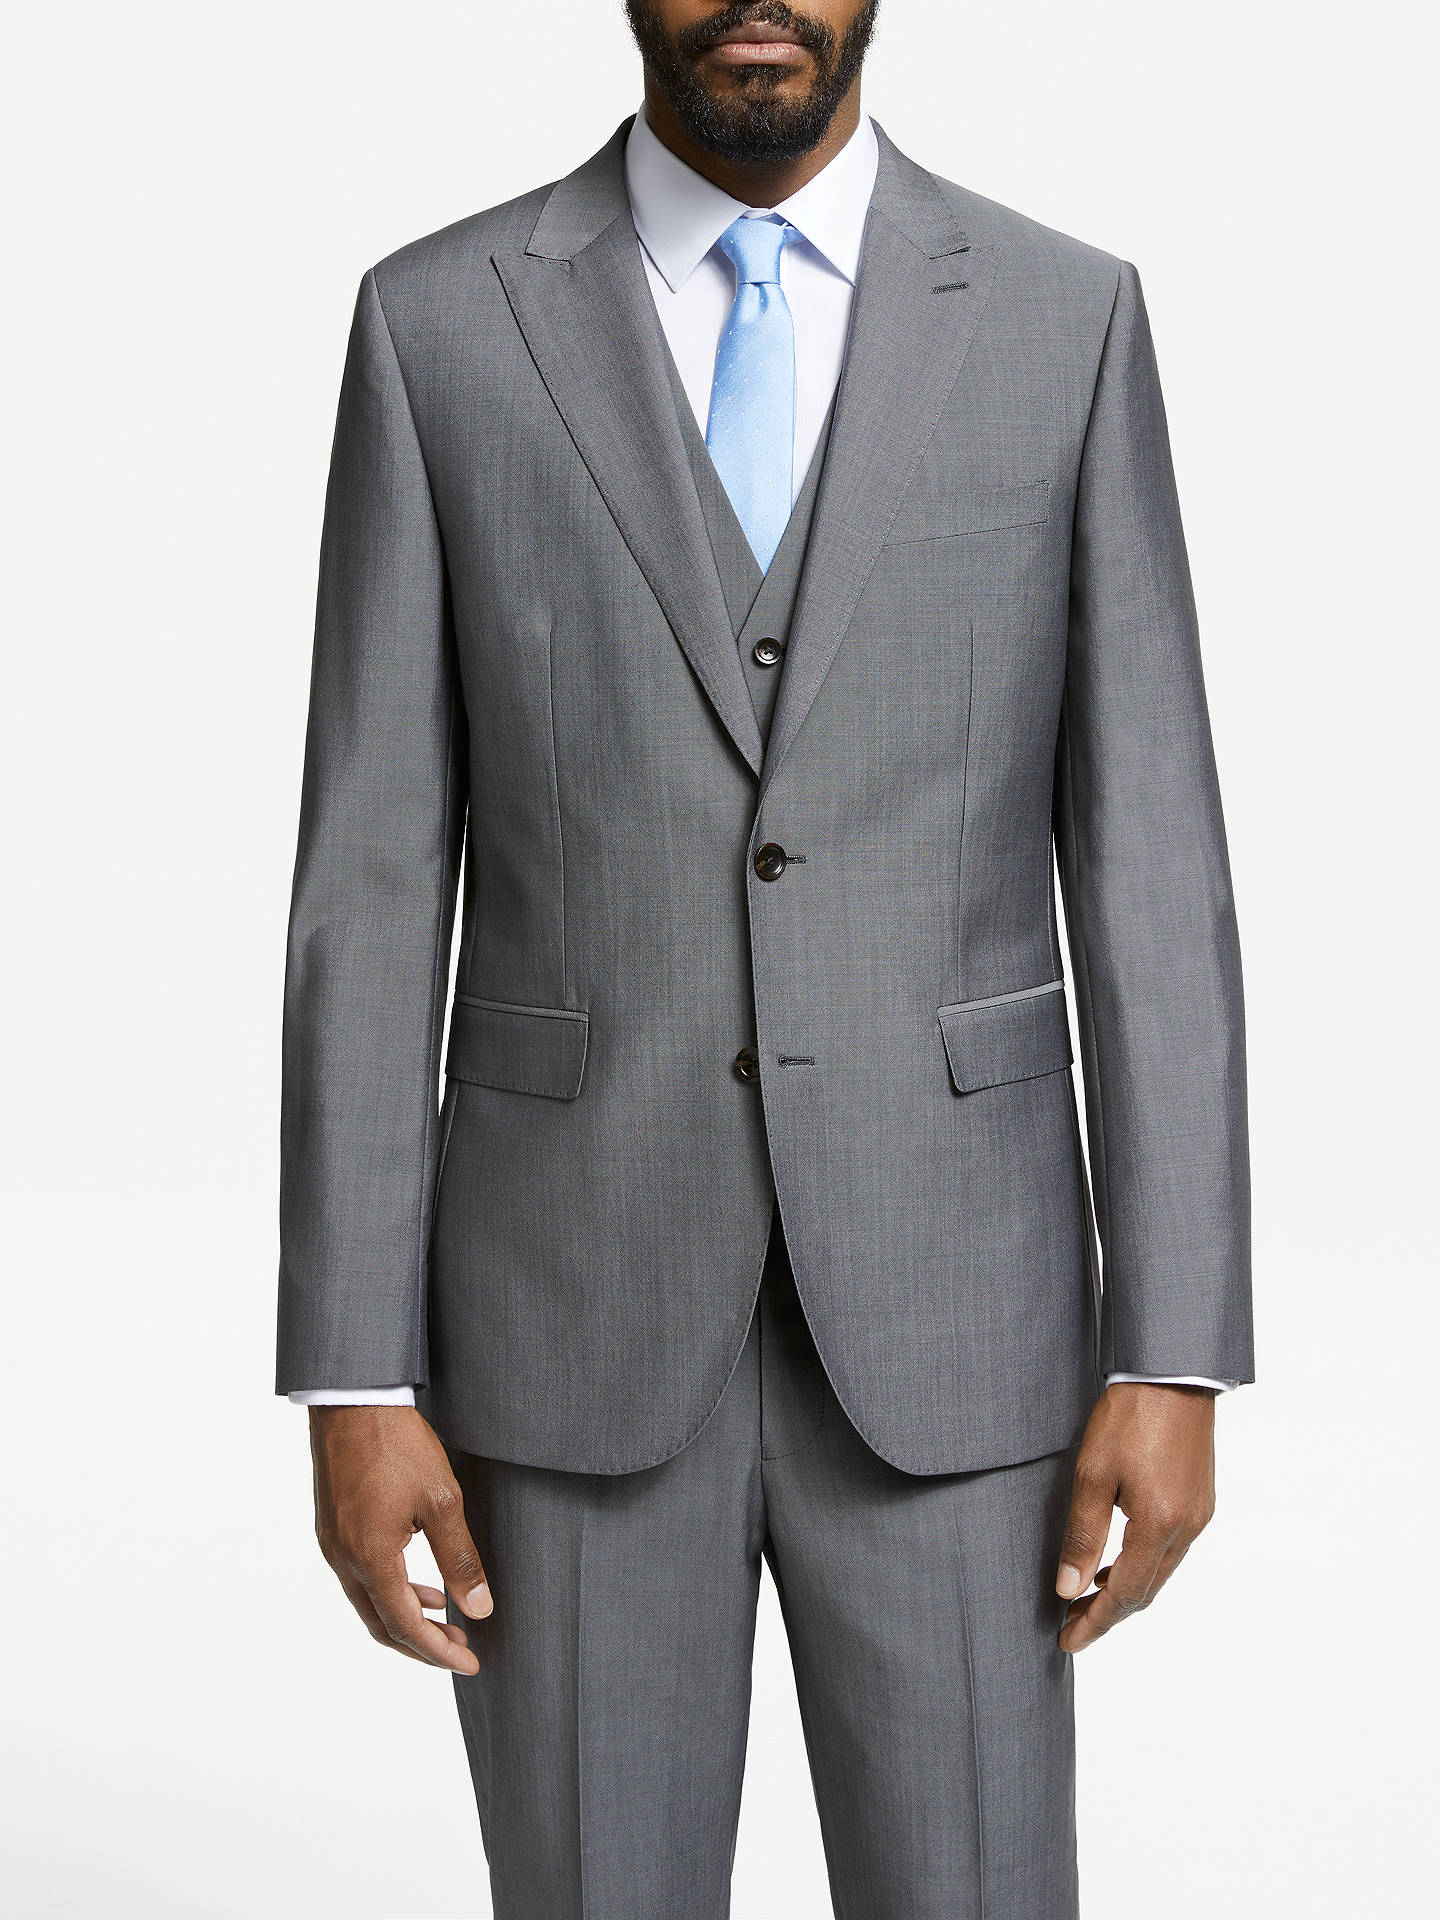 Buy John Lewis & Partners Italian Wool Mohair Suit Jacket, Silver, 44L Online at johnlewis.com